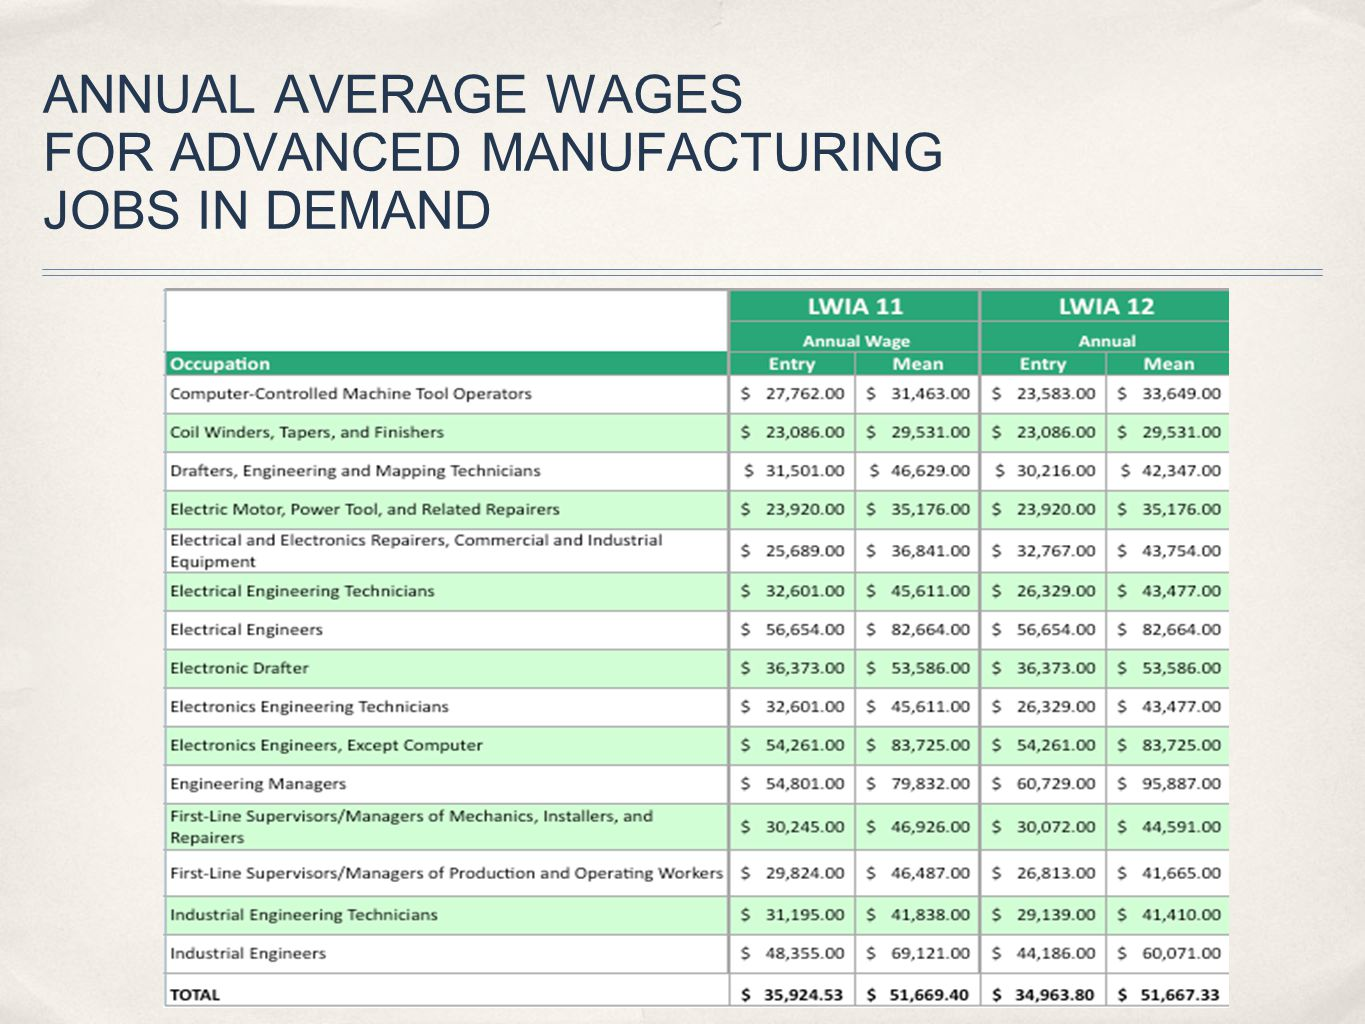 ANNUAL AVERAGE WAGES FOR ADVANCED MANUFACTURING JOBS IN DEMAND